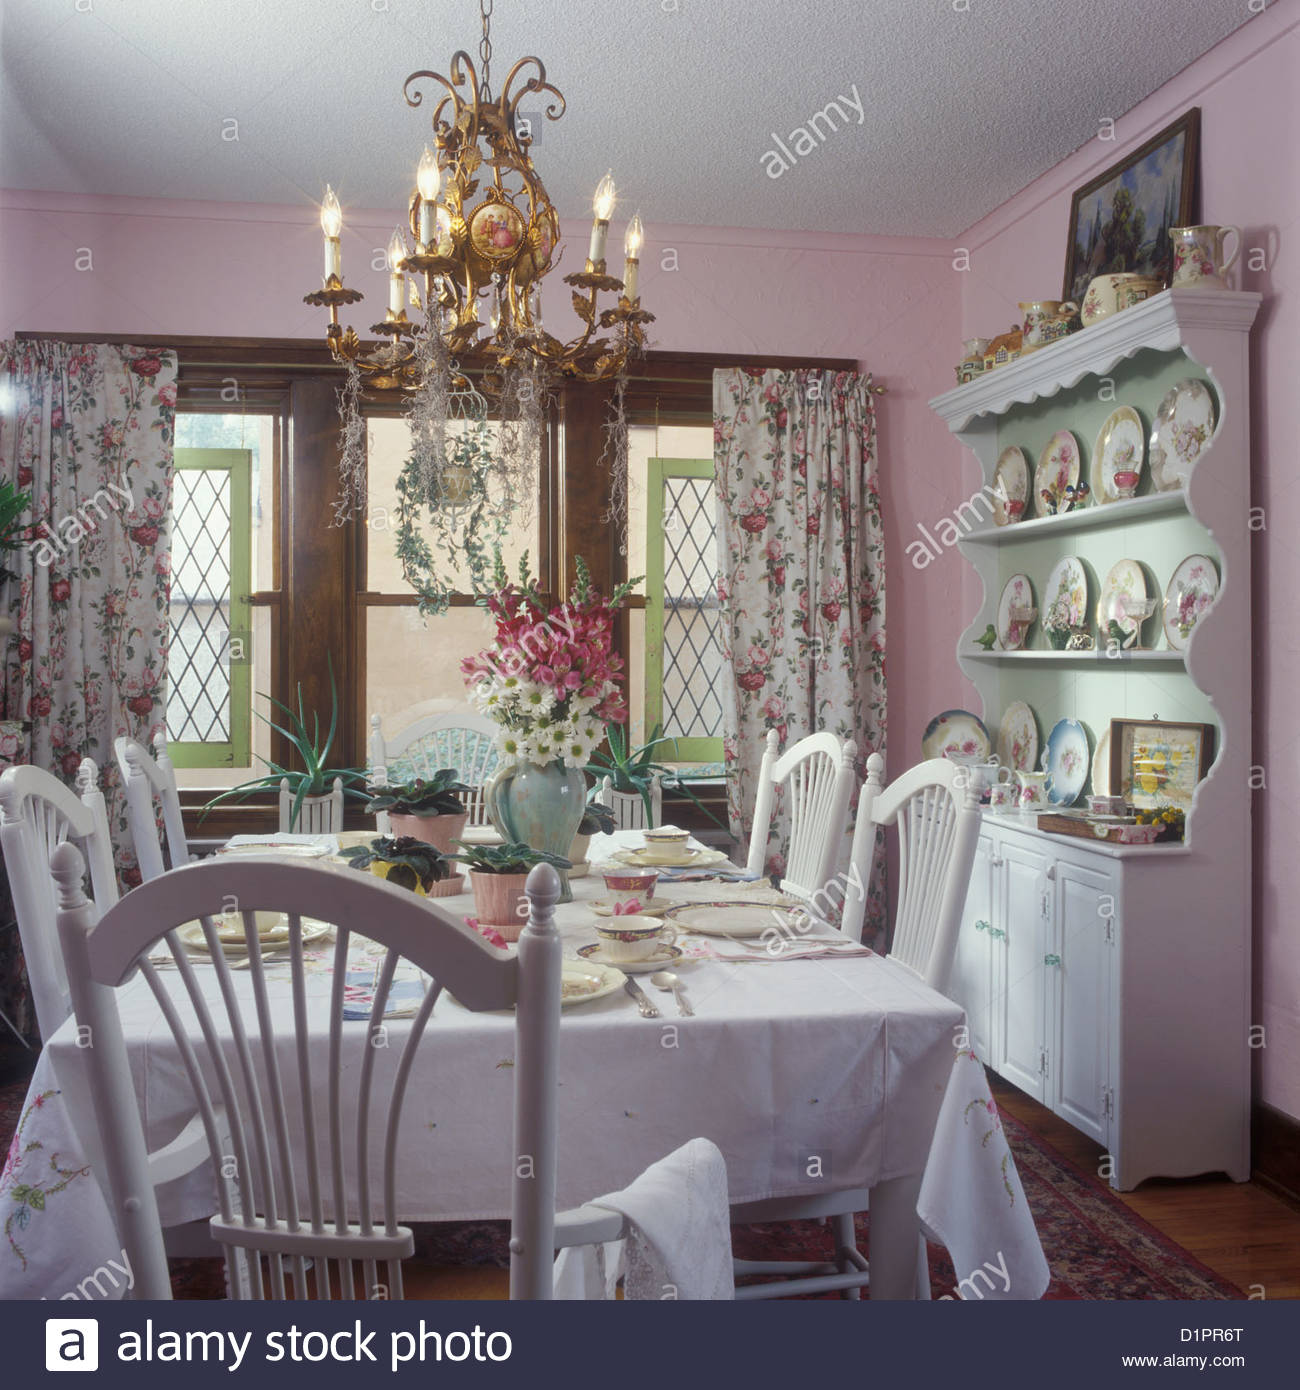 all information about interior and exterior home design ngi dining rooms vintage curtains shabby chic cottage